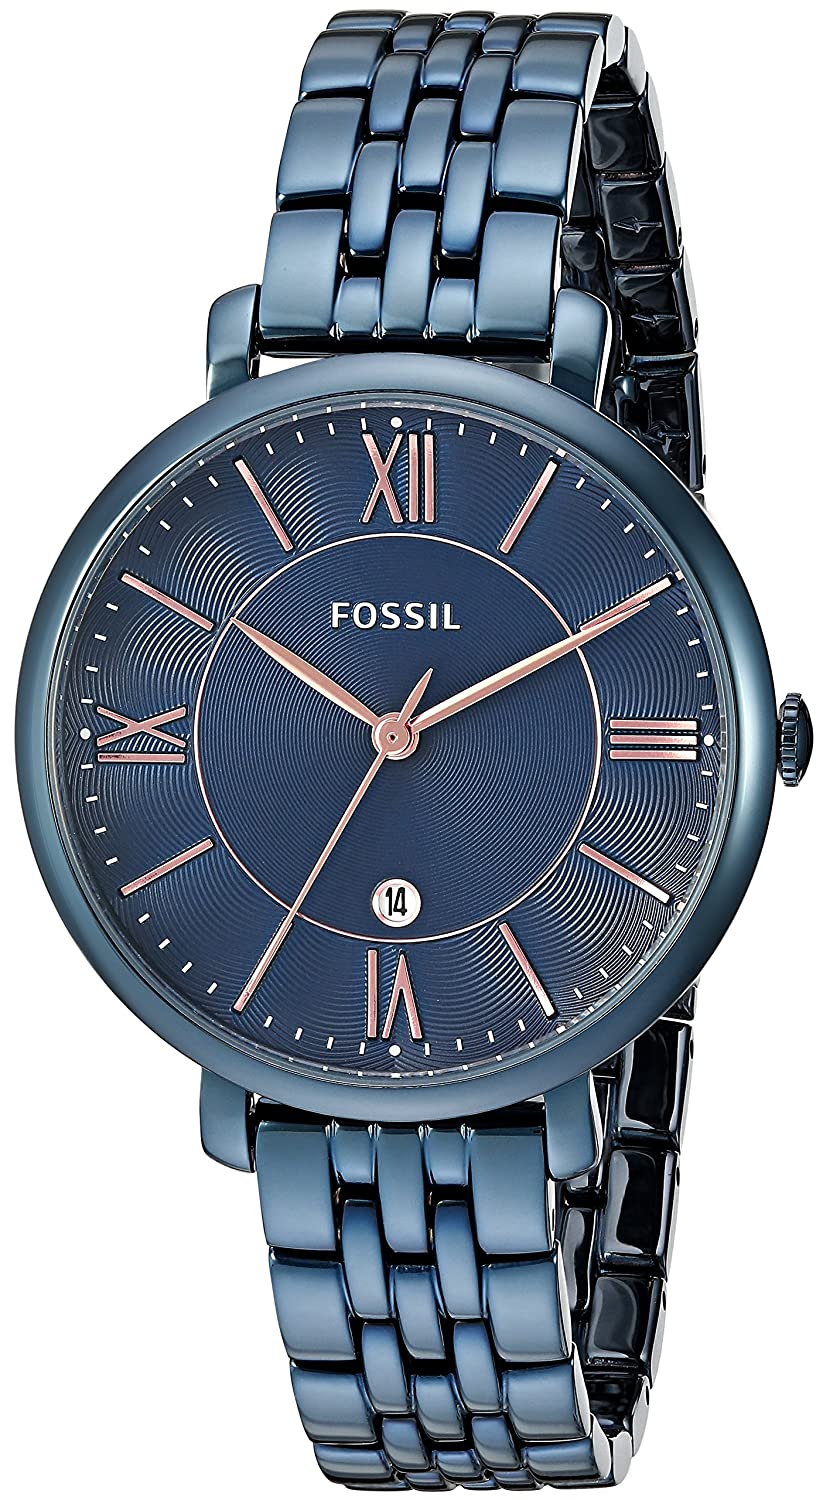 Fossil blue watch